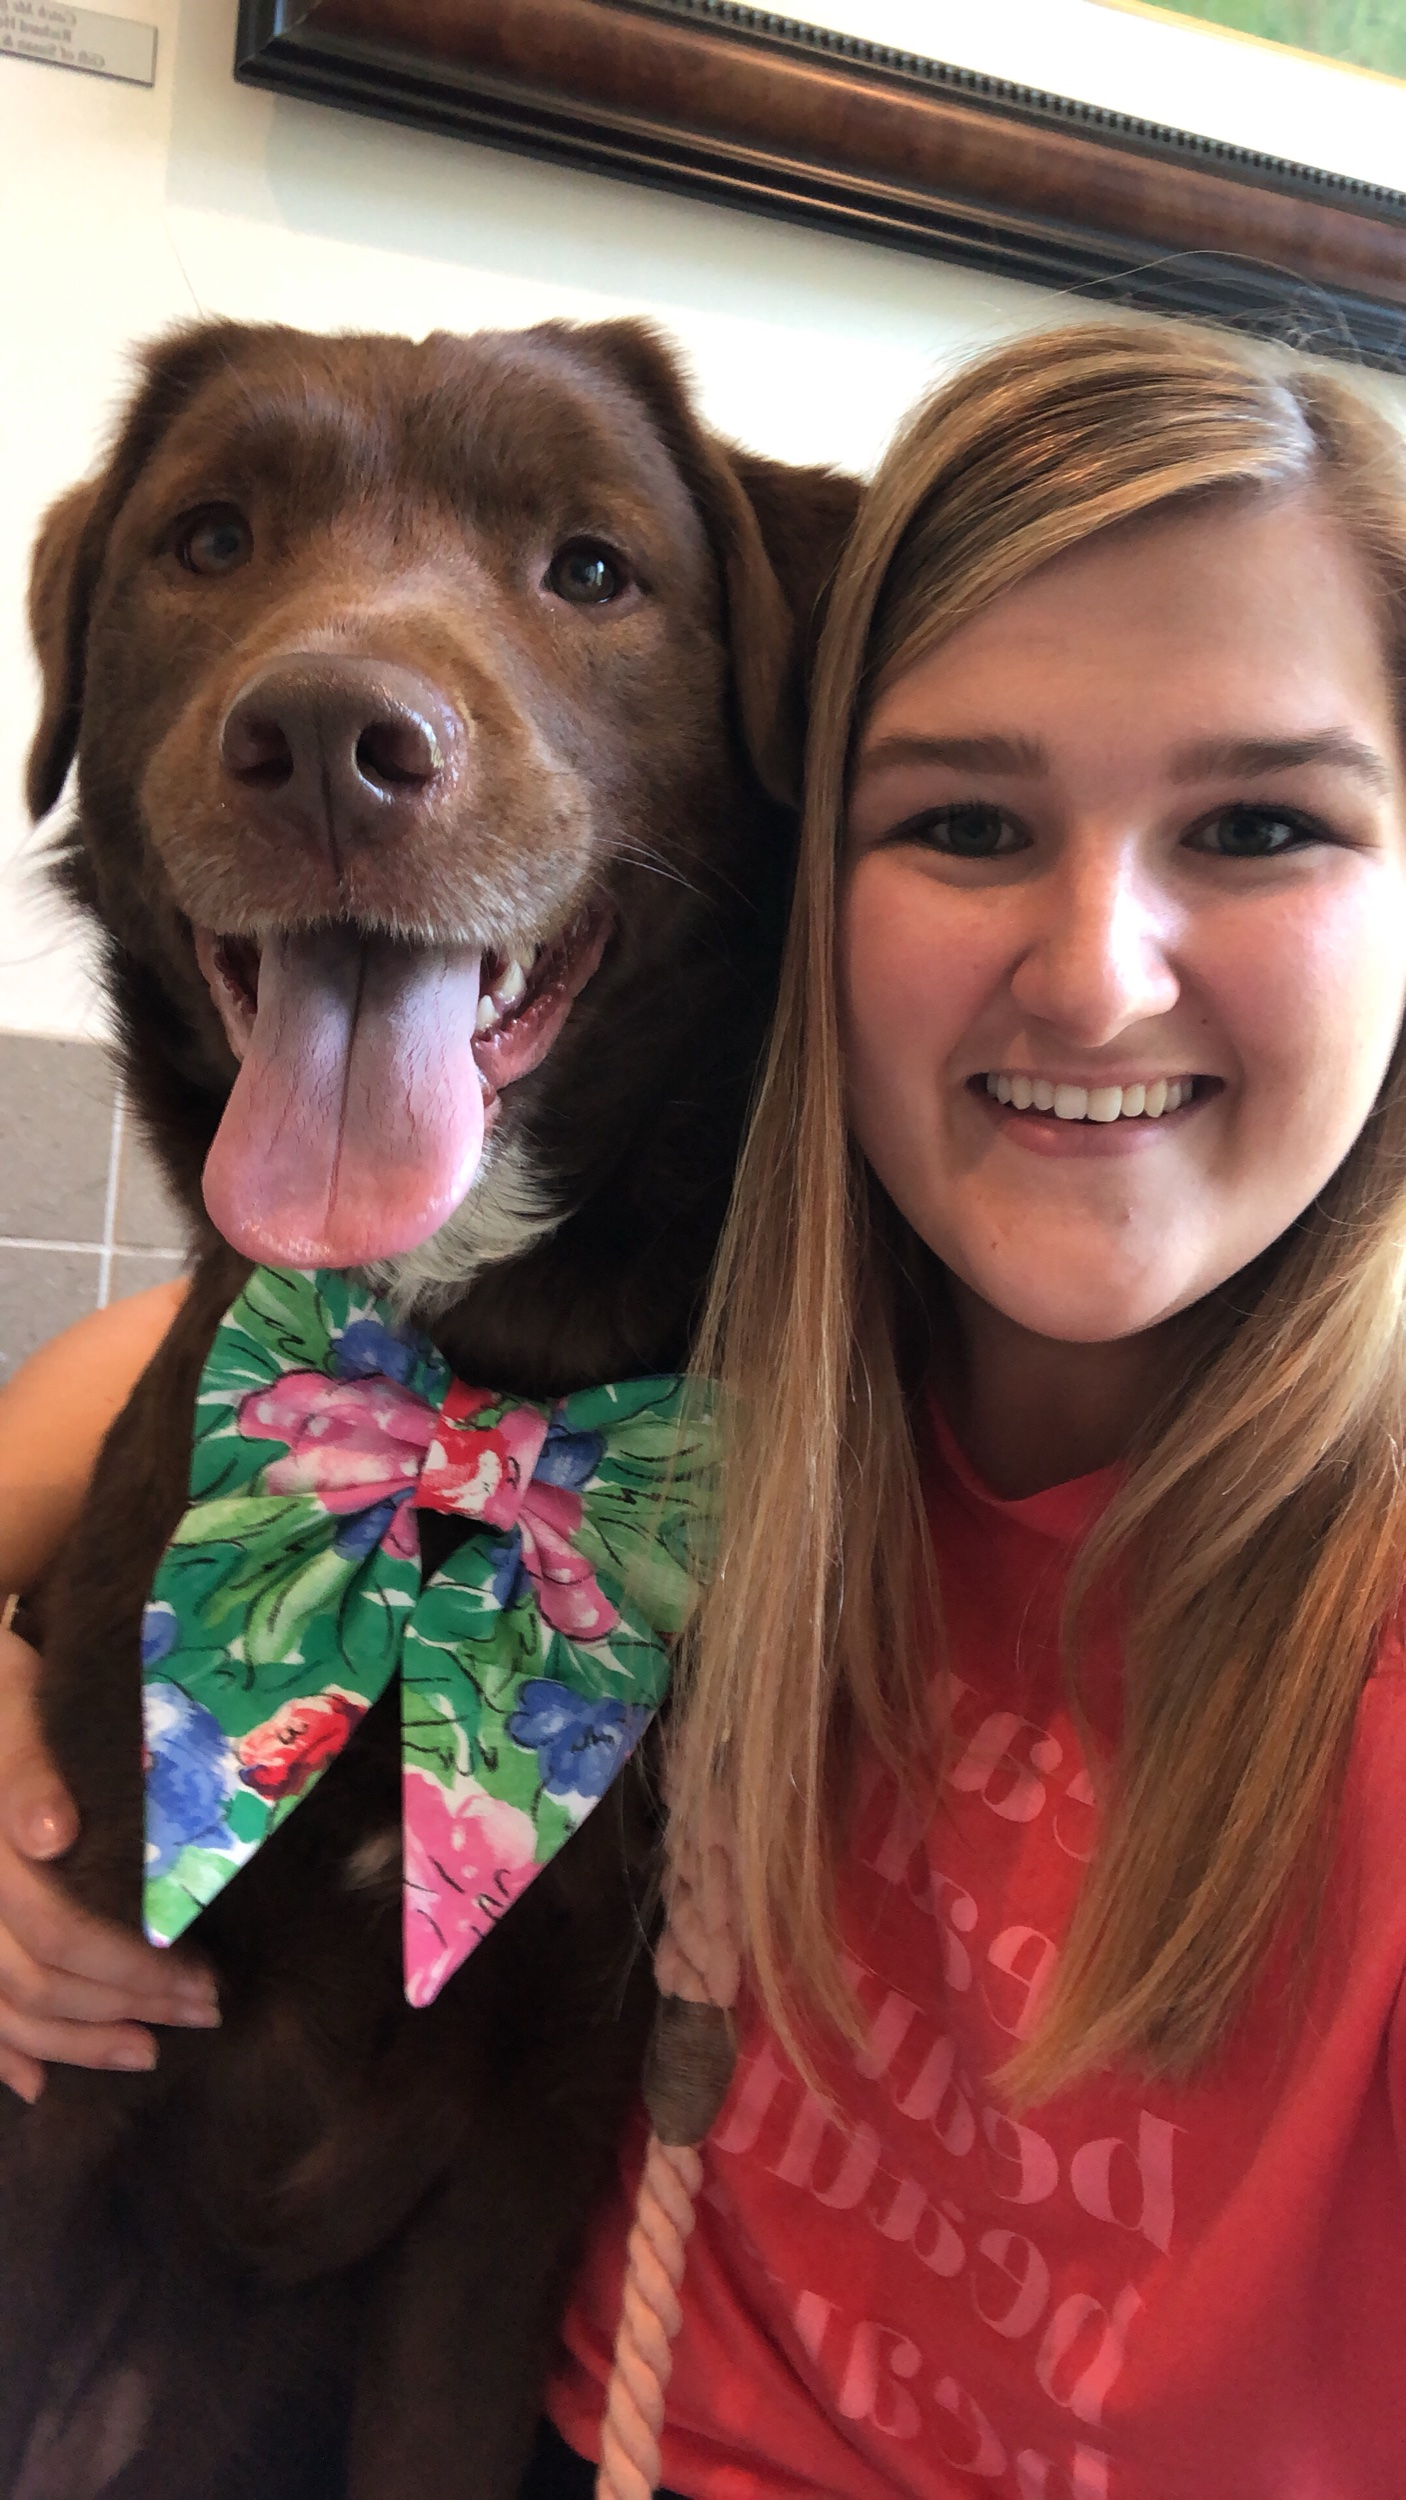 Kellie here. 26 year old dog mom from Raleigh, NC. Ultimate dog mom to Mako! We're like two peas in a pod, getting ready for our next adventure! Stay Tuned for more!